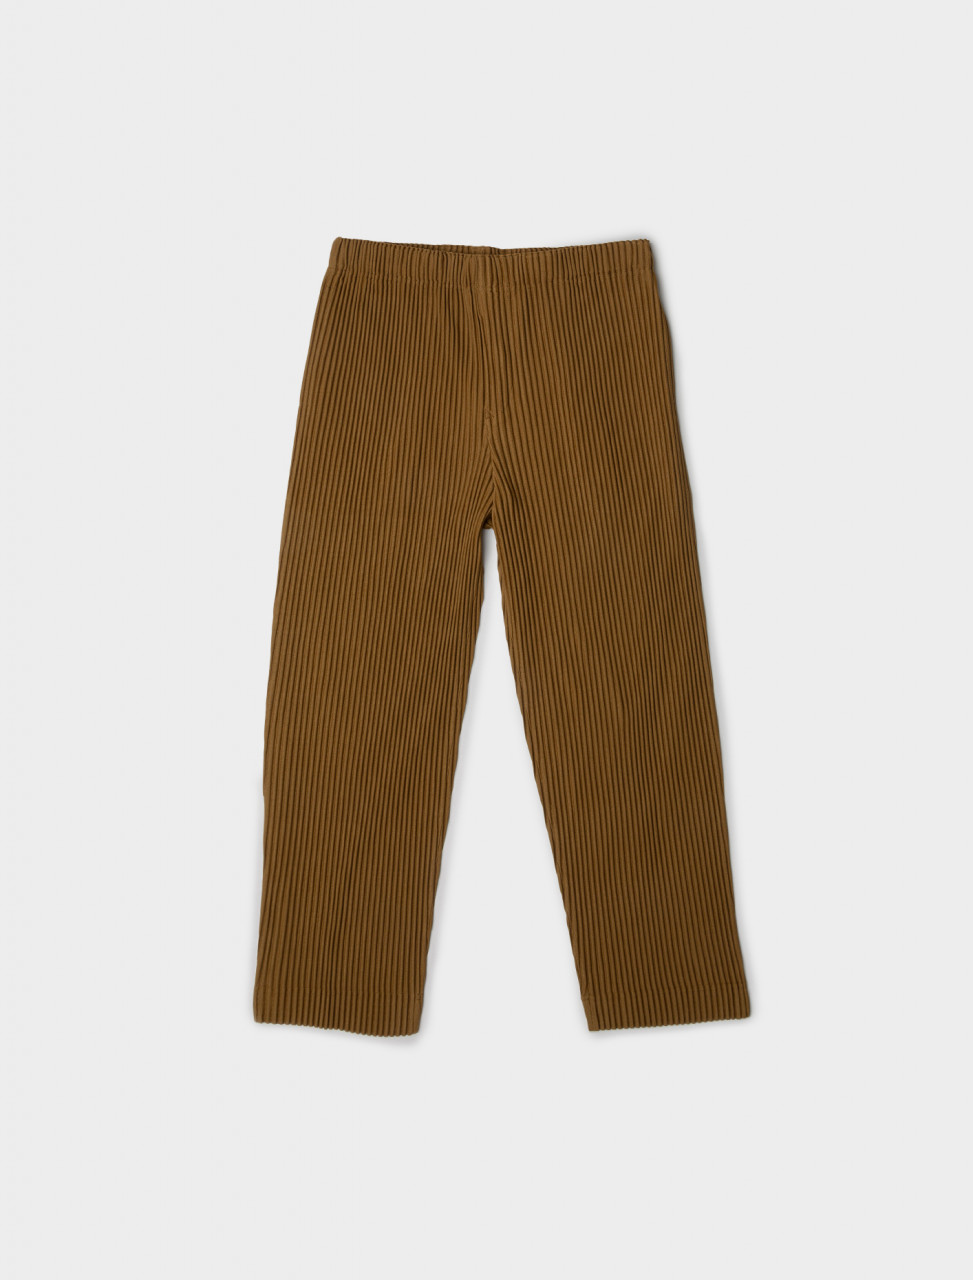 Front view of HOMME PLISSÉ Issey Miyake Pleated Trouser in Clay Brown